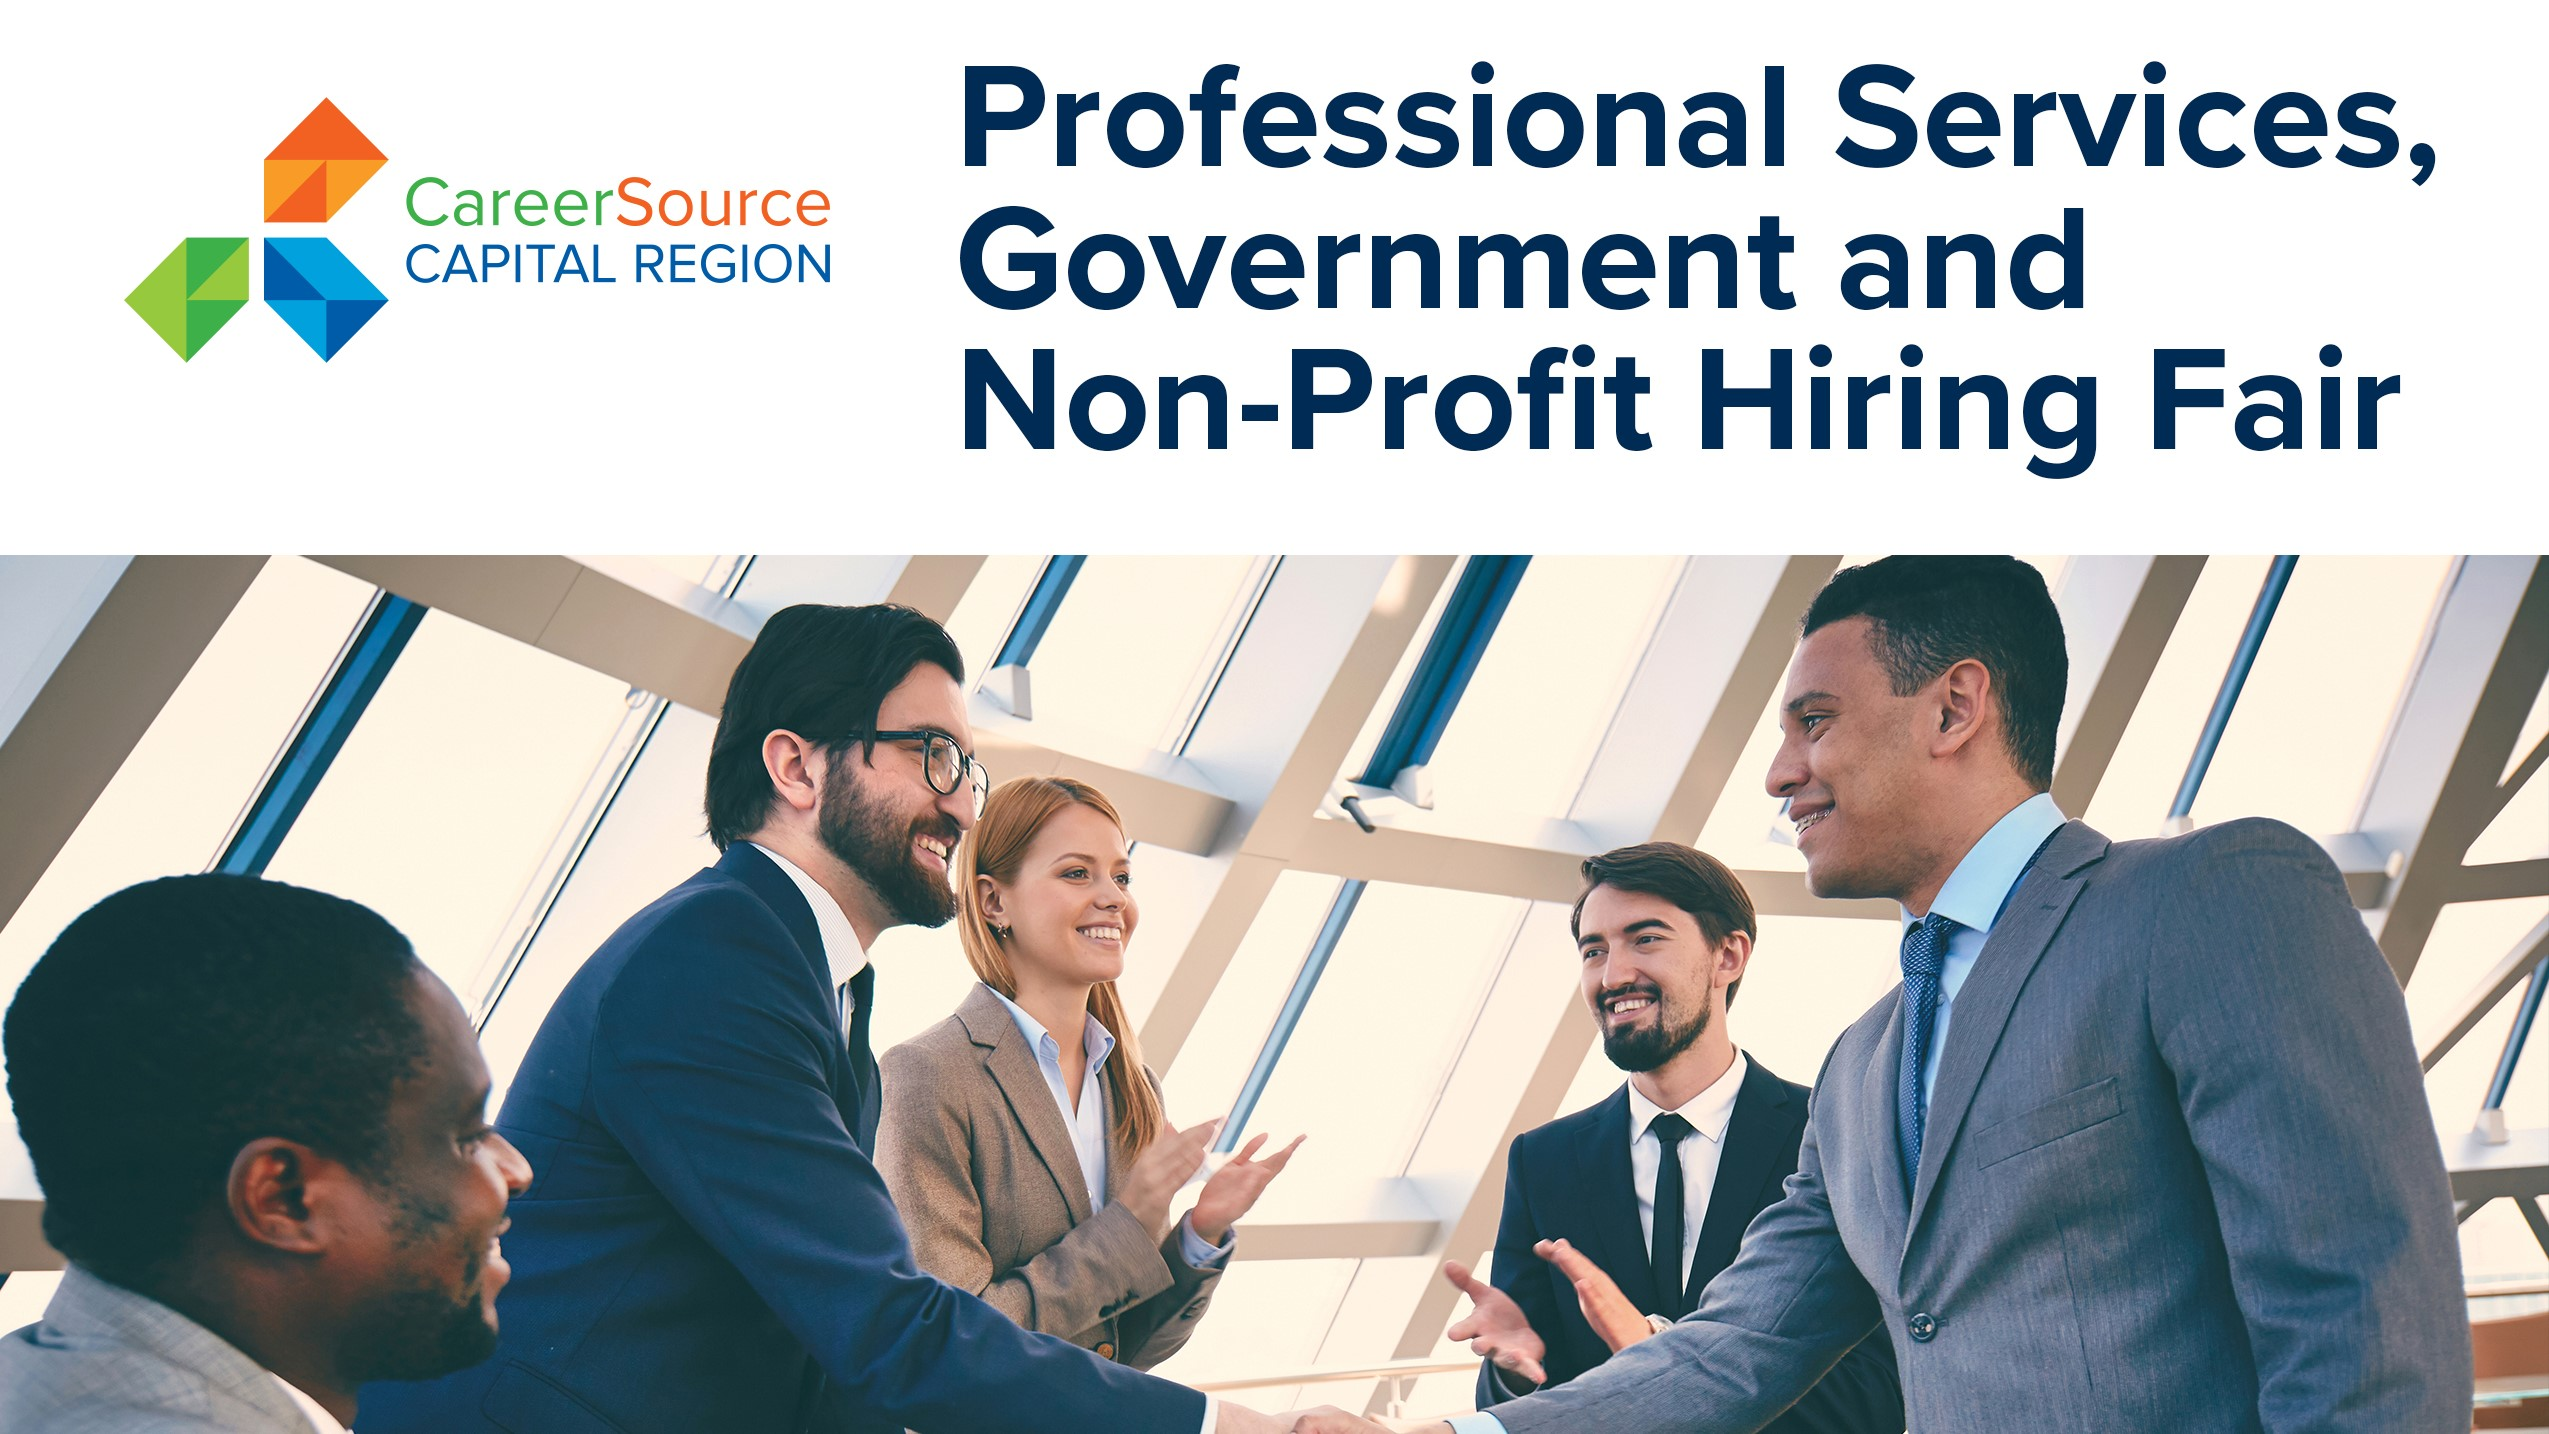 Professional Services, Government, and Non-Profit Hiring Fair